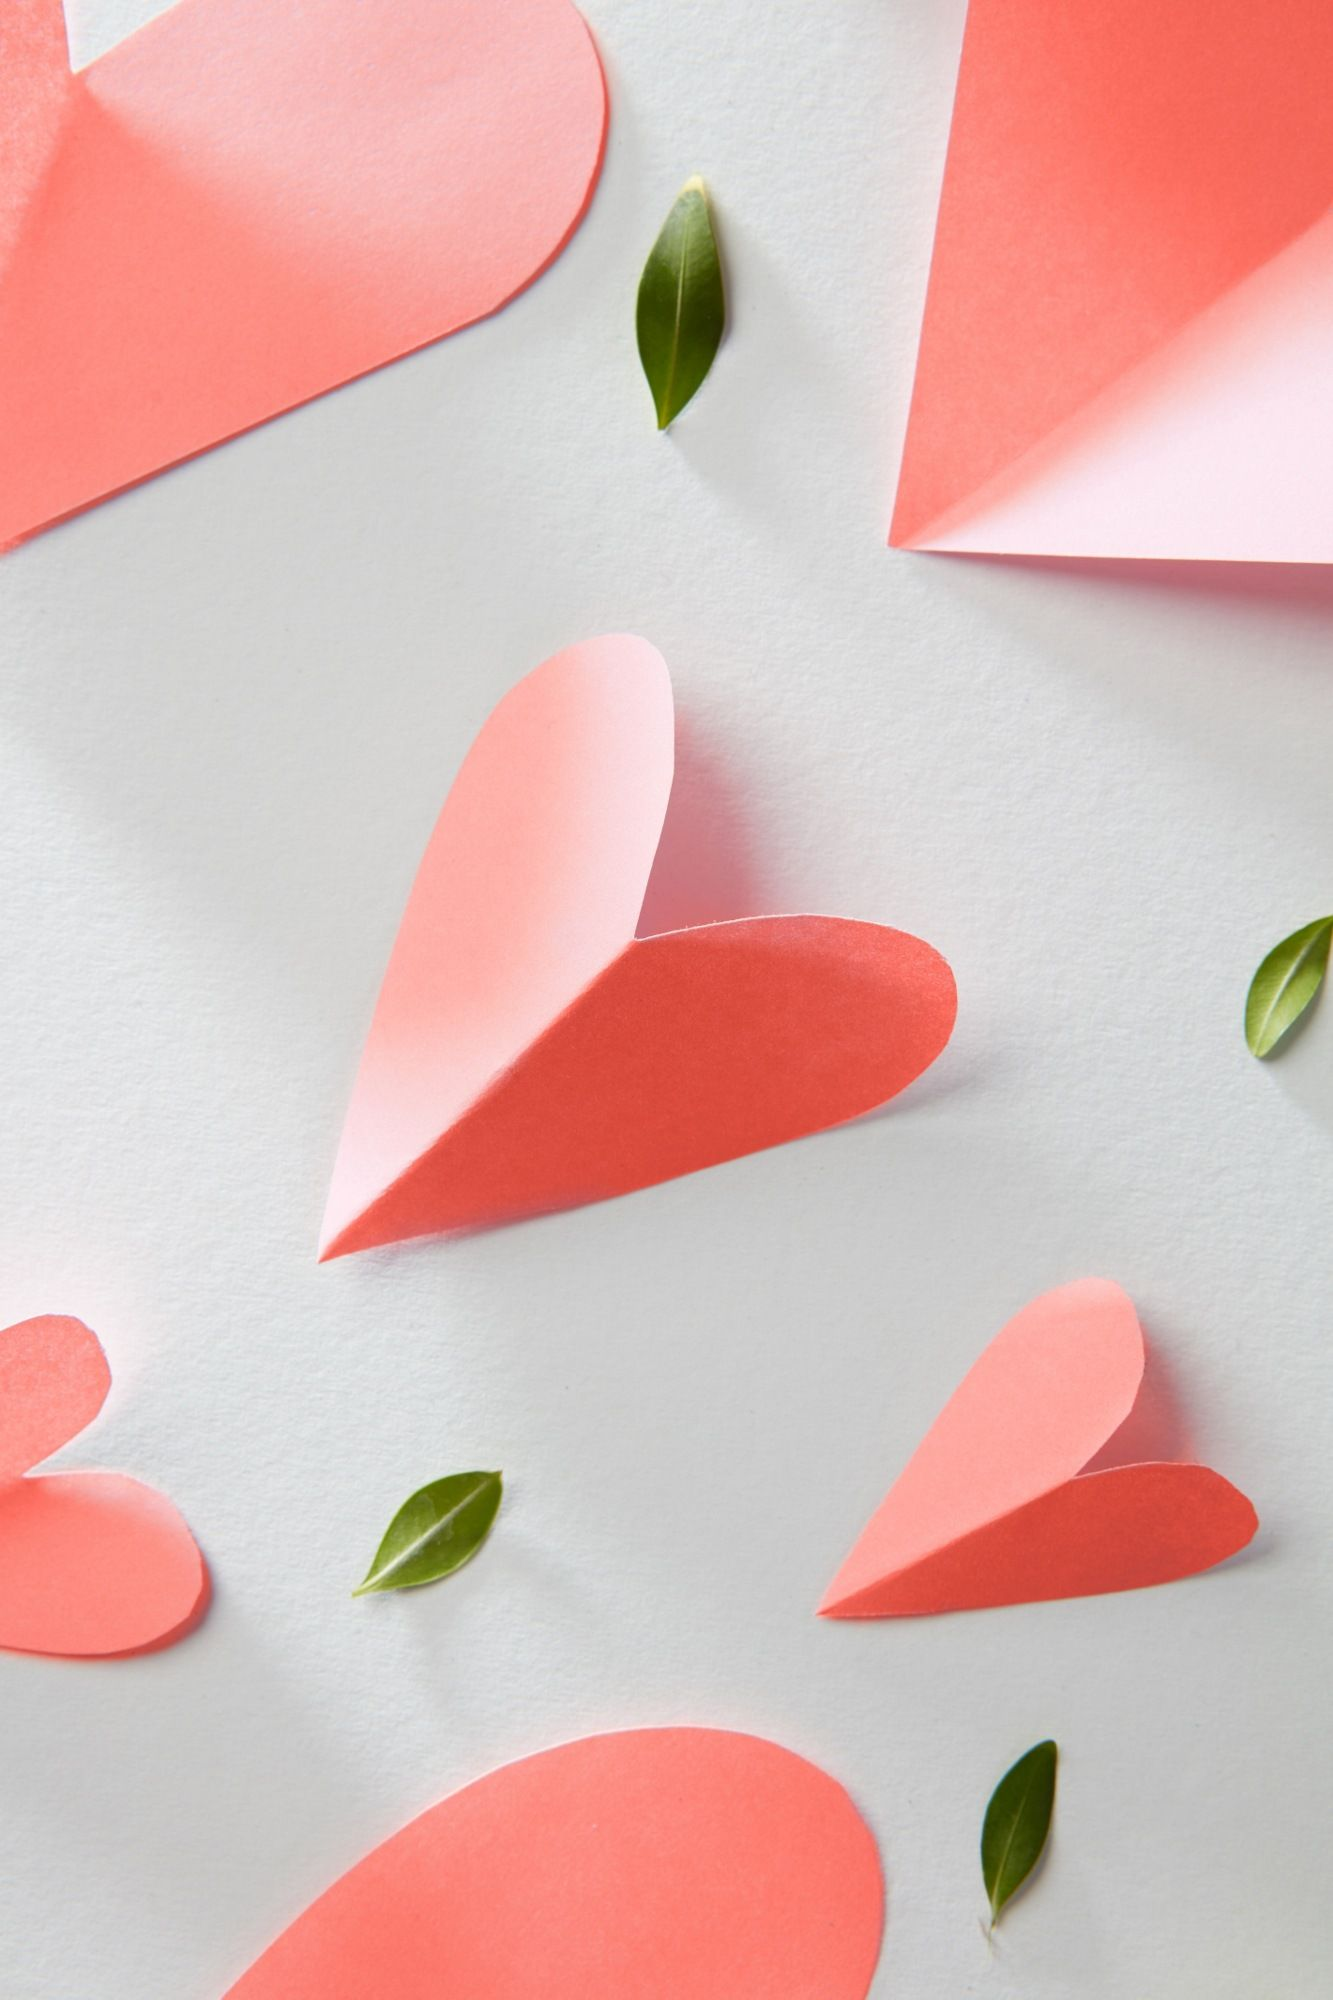 Greeting patter with valentines hearts in a color of the year 2019 Living Coral pantone on a white background, copy space.